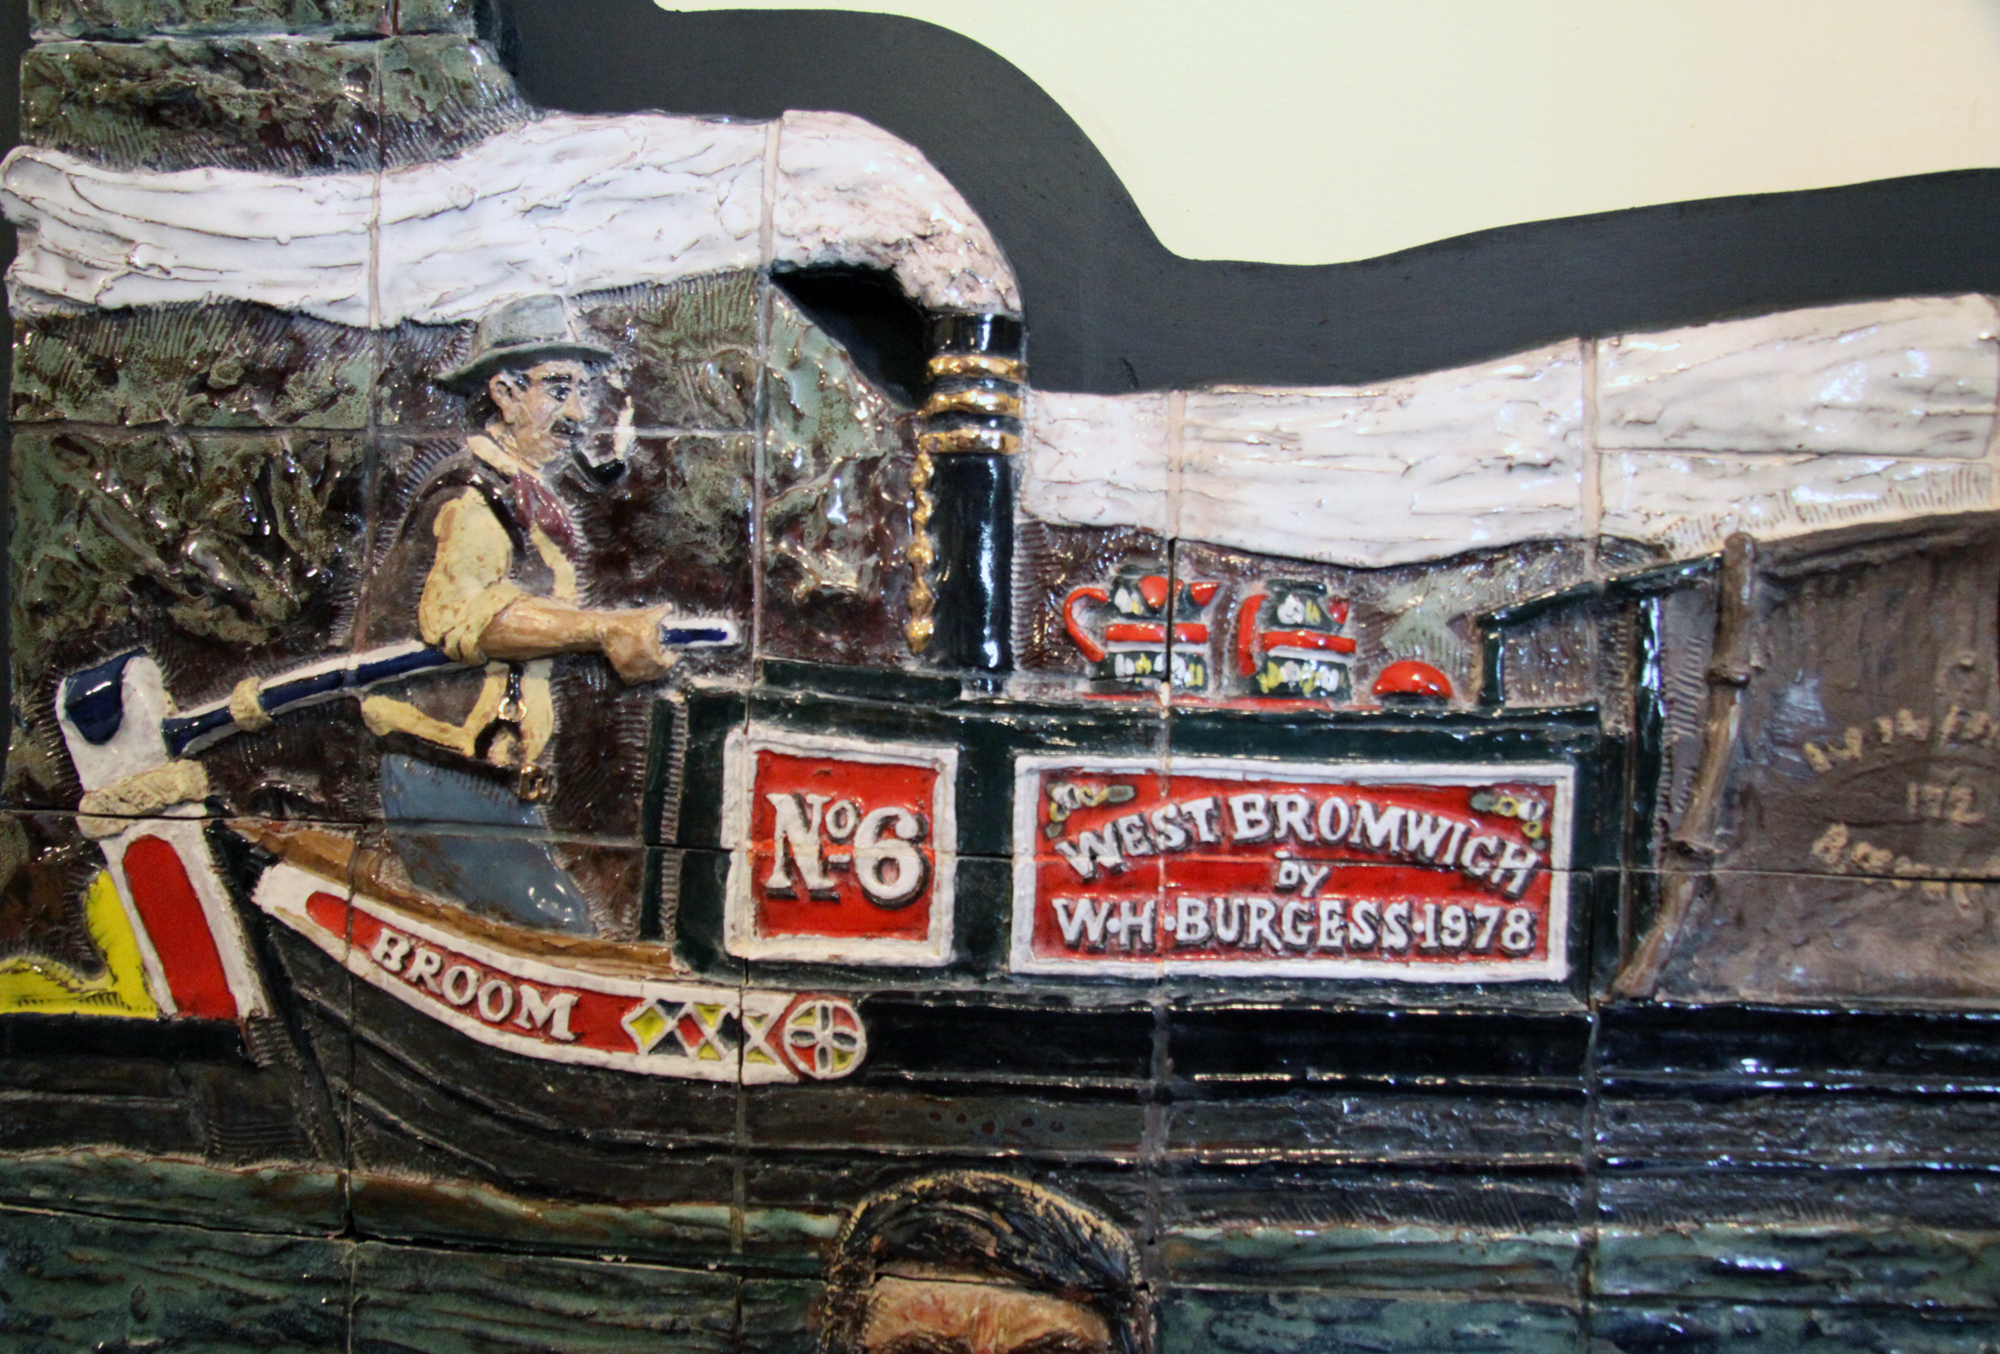 The West Bromwich Building Society Mural